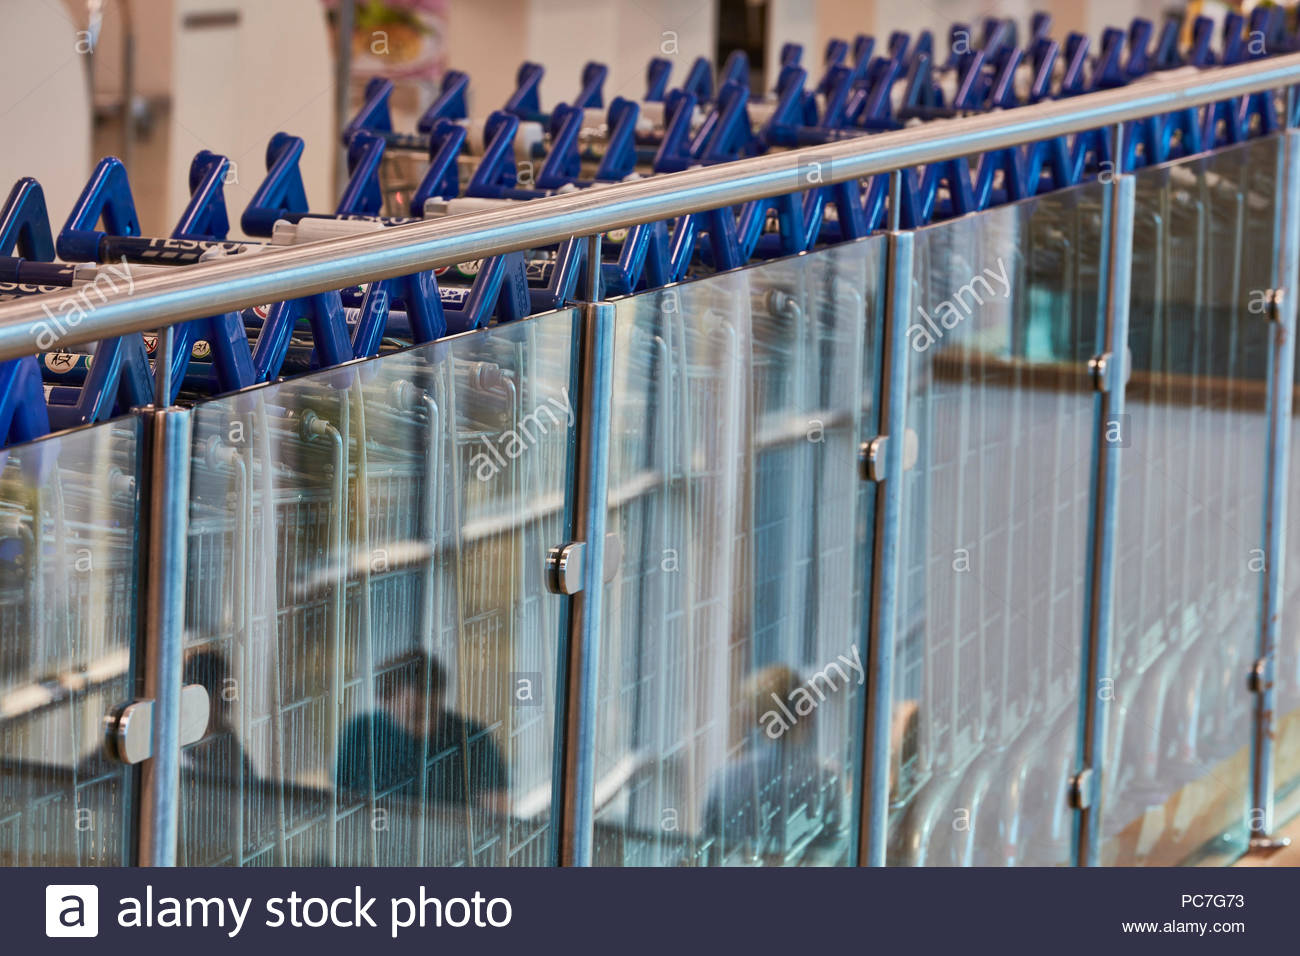 Facade abstract. Tesco Extra, Crewe, Crewe, United Kingdom. Architect: N/A, 2018. - Stock Image